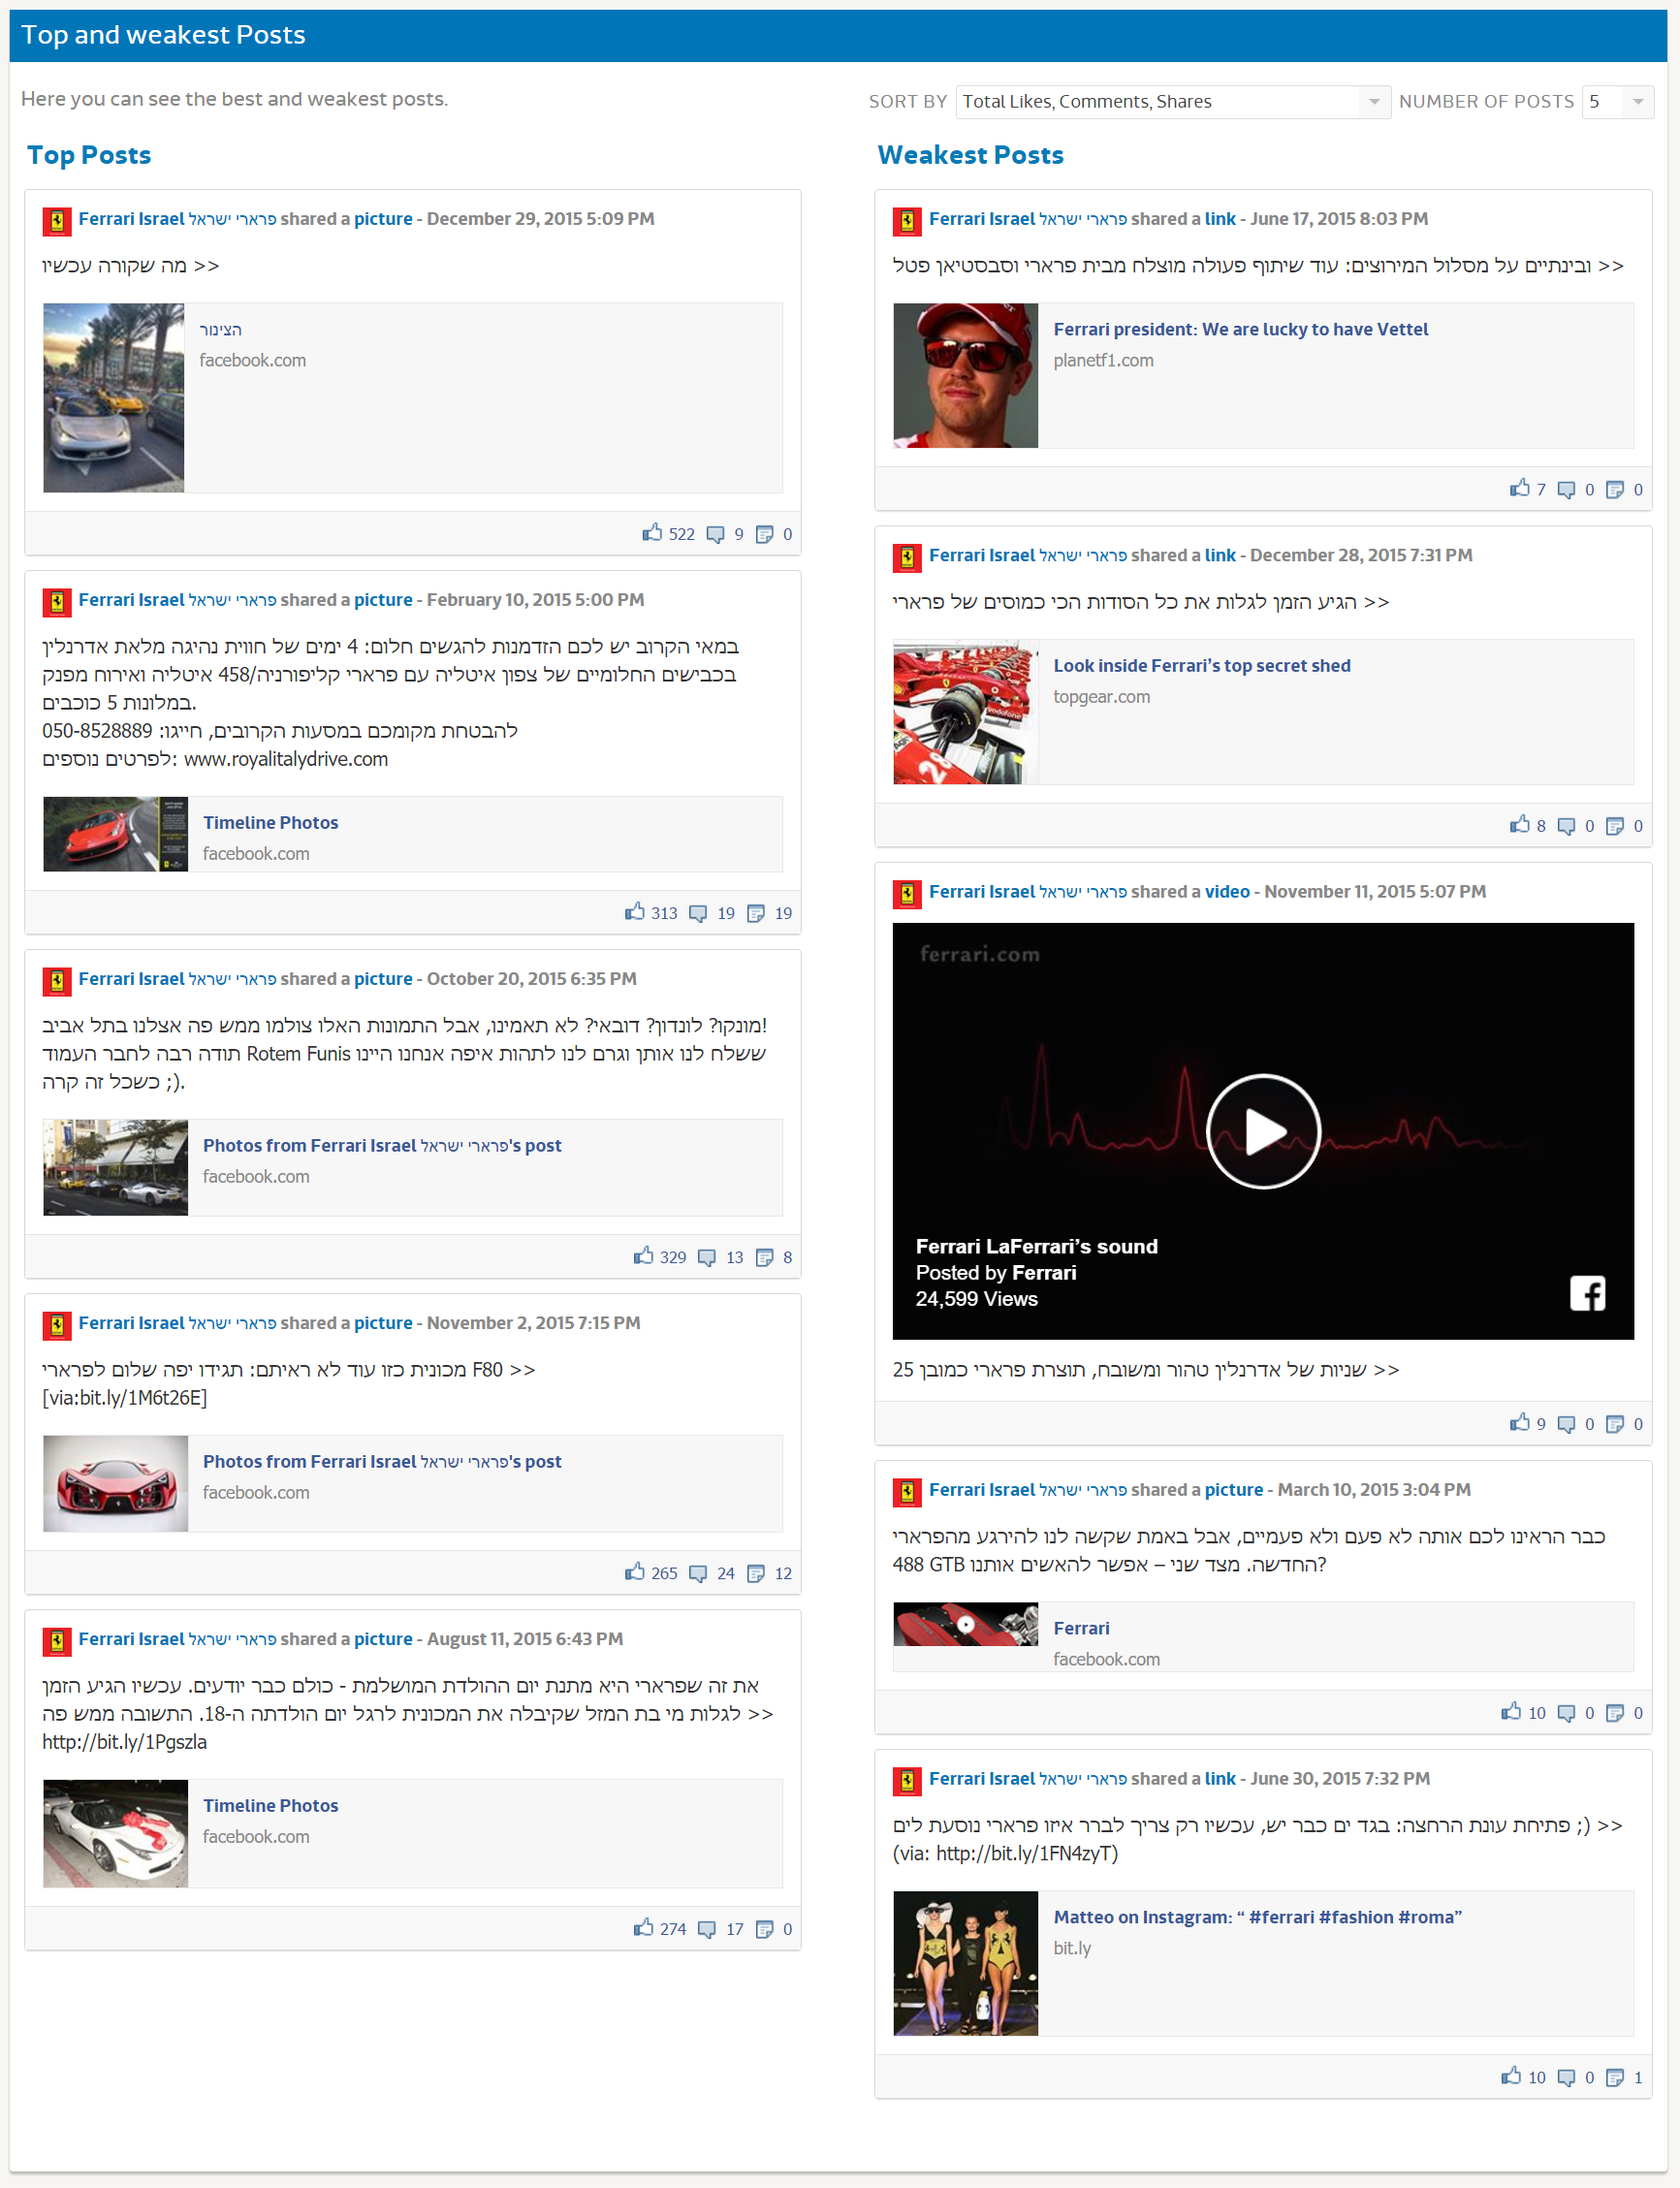 Media research - Ferrari FB (3)